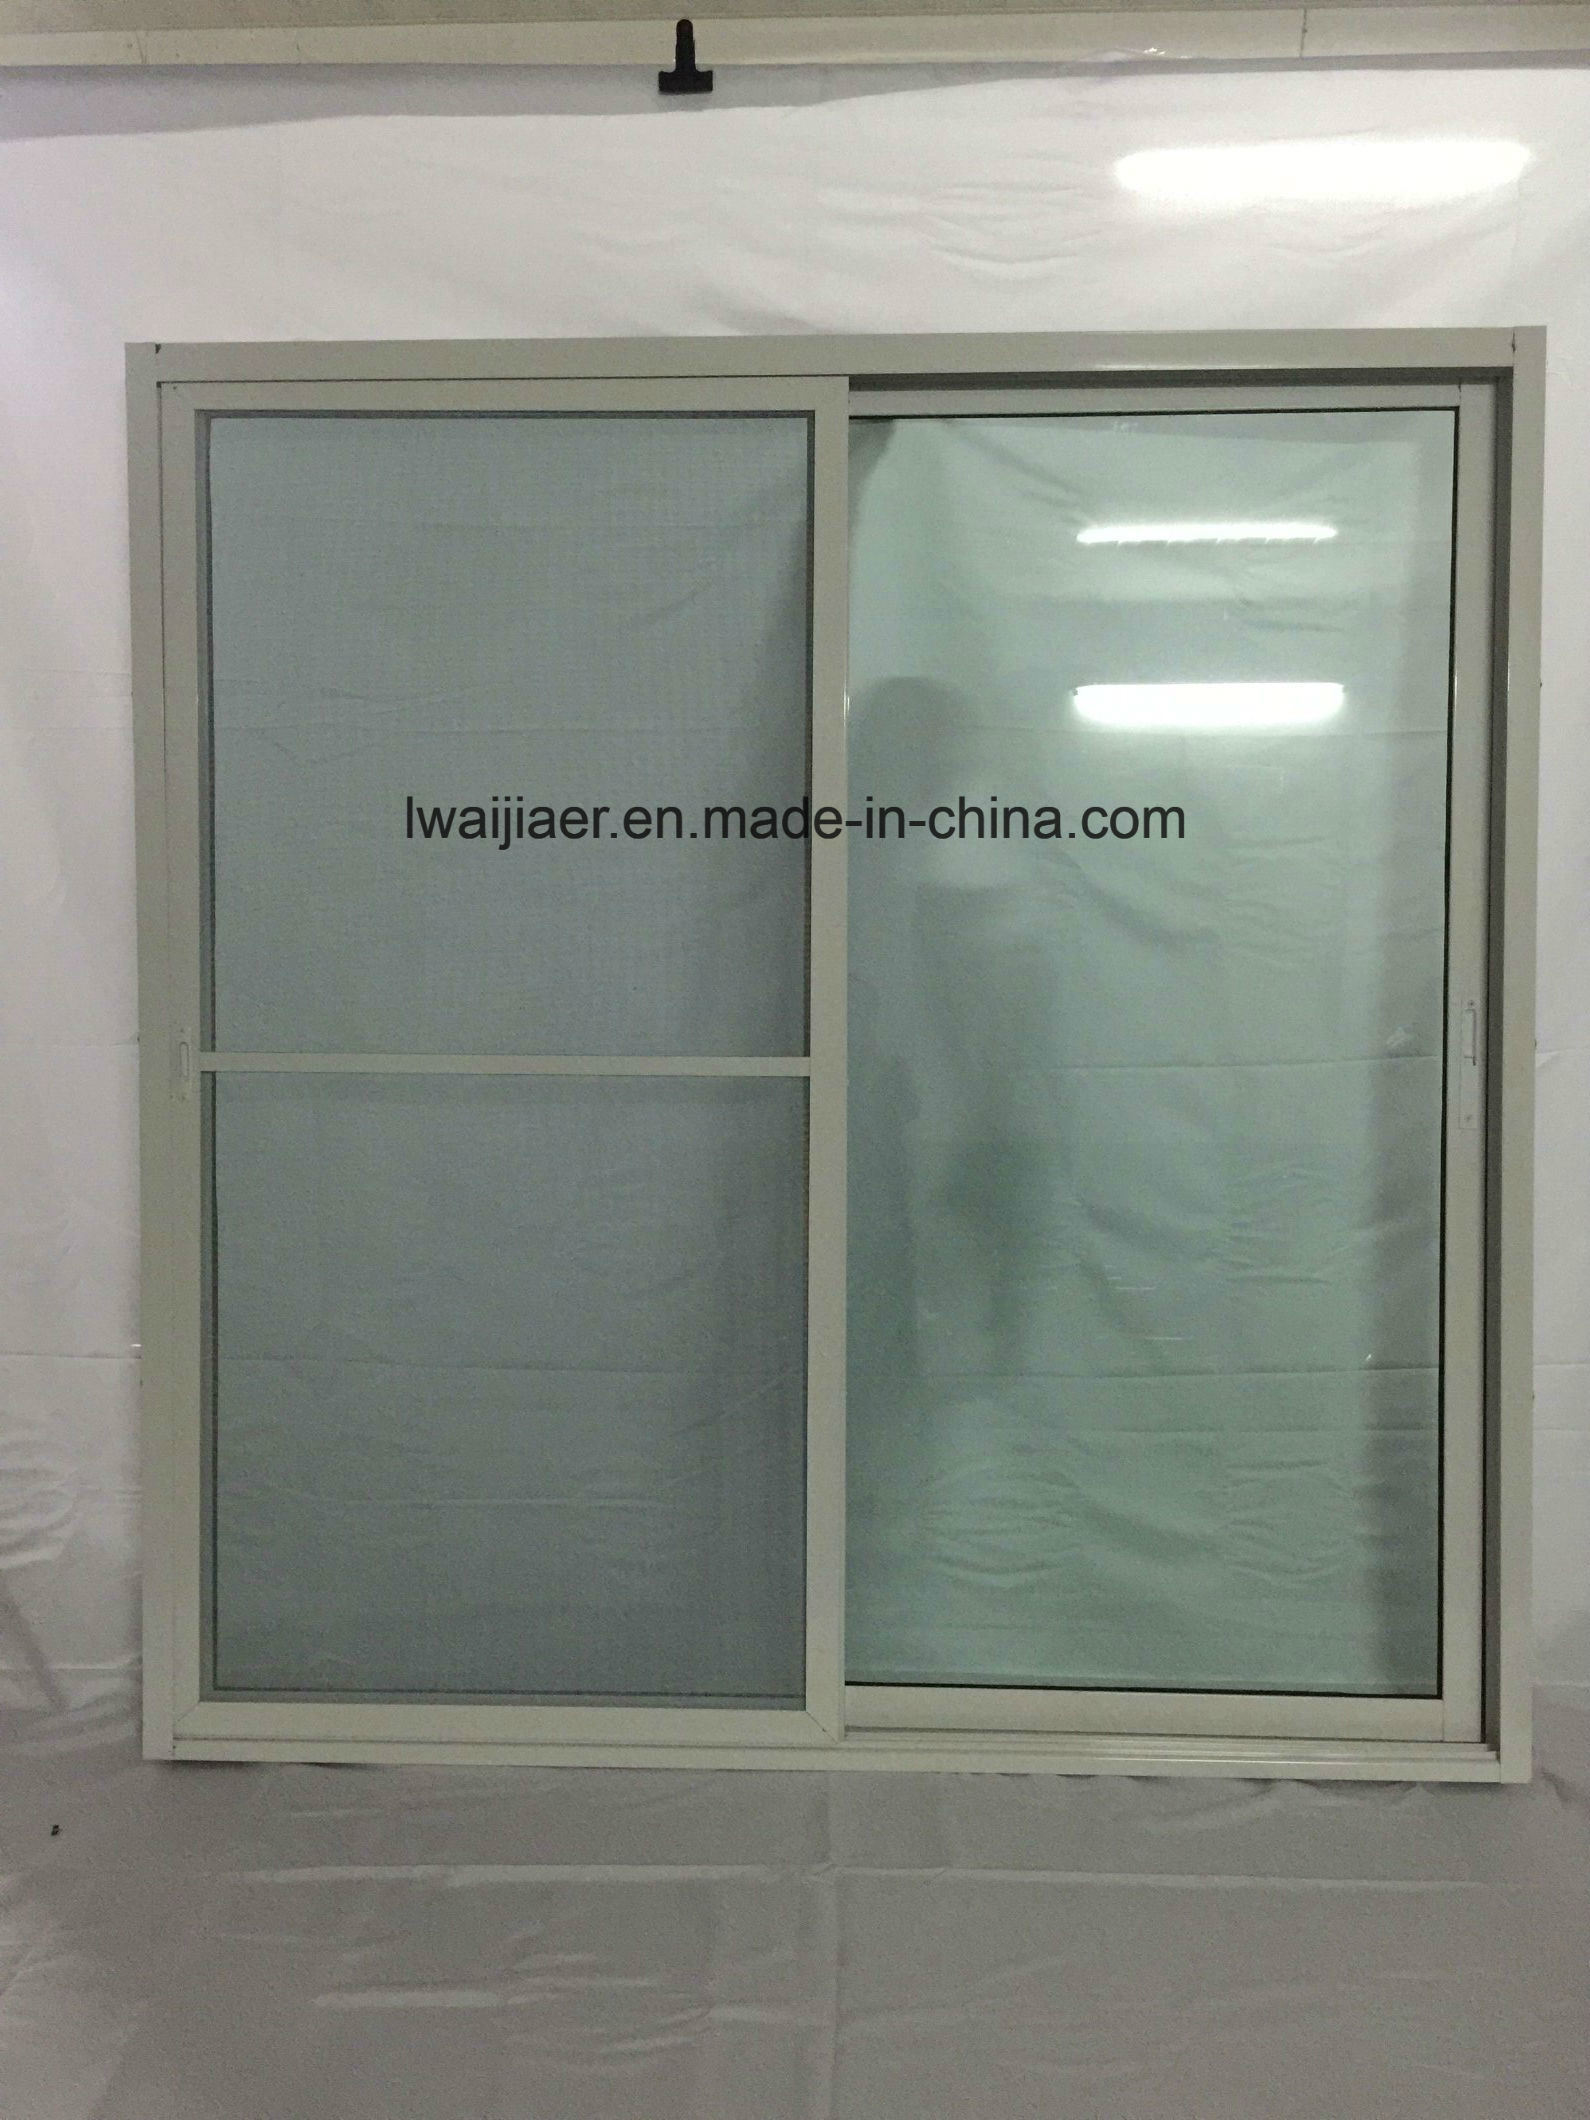 China Aluminumaluminium Sliding Door High Quality Competitive